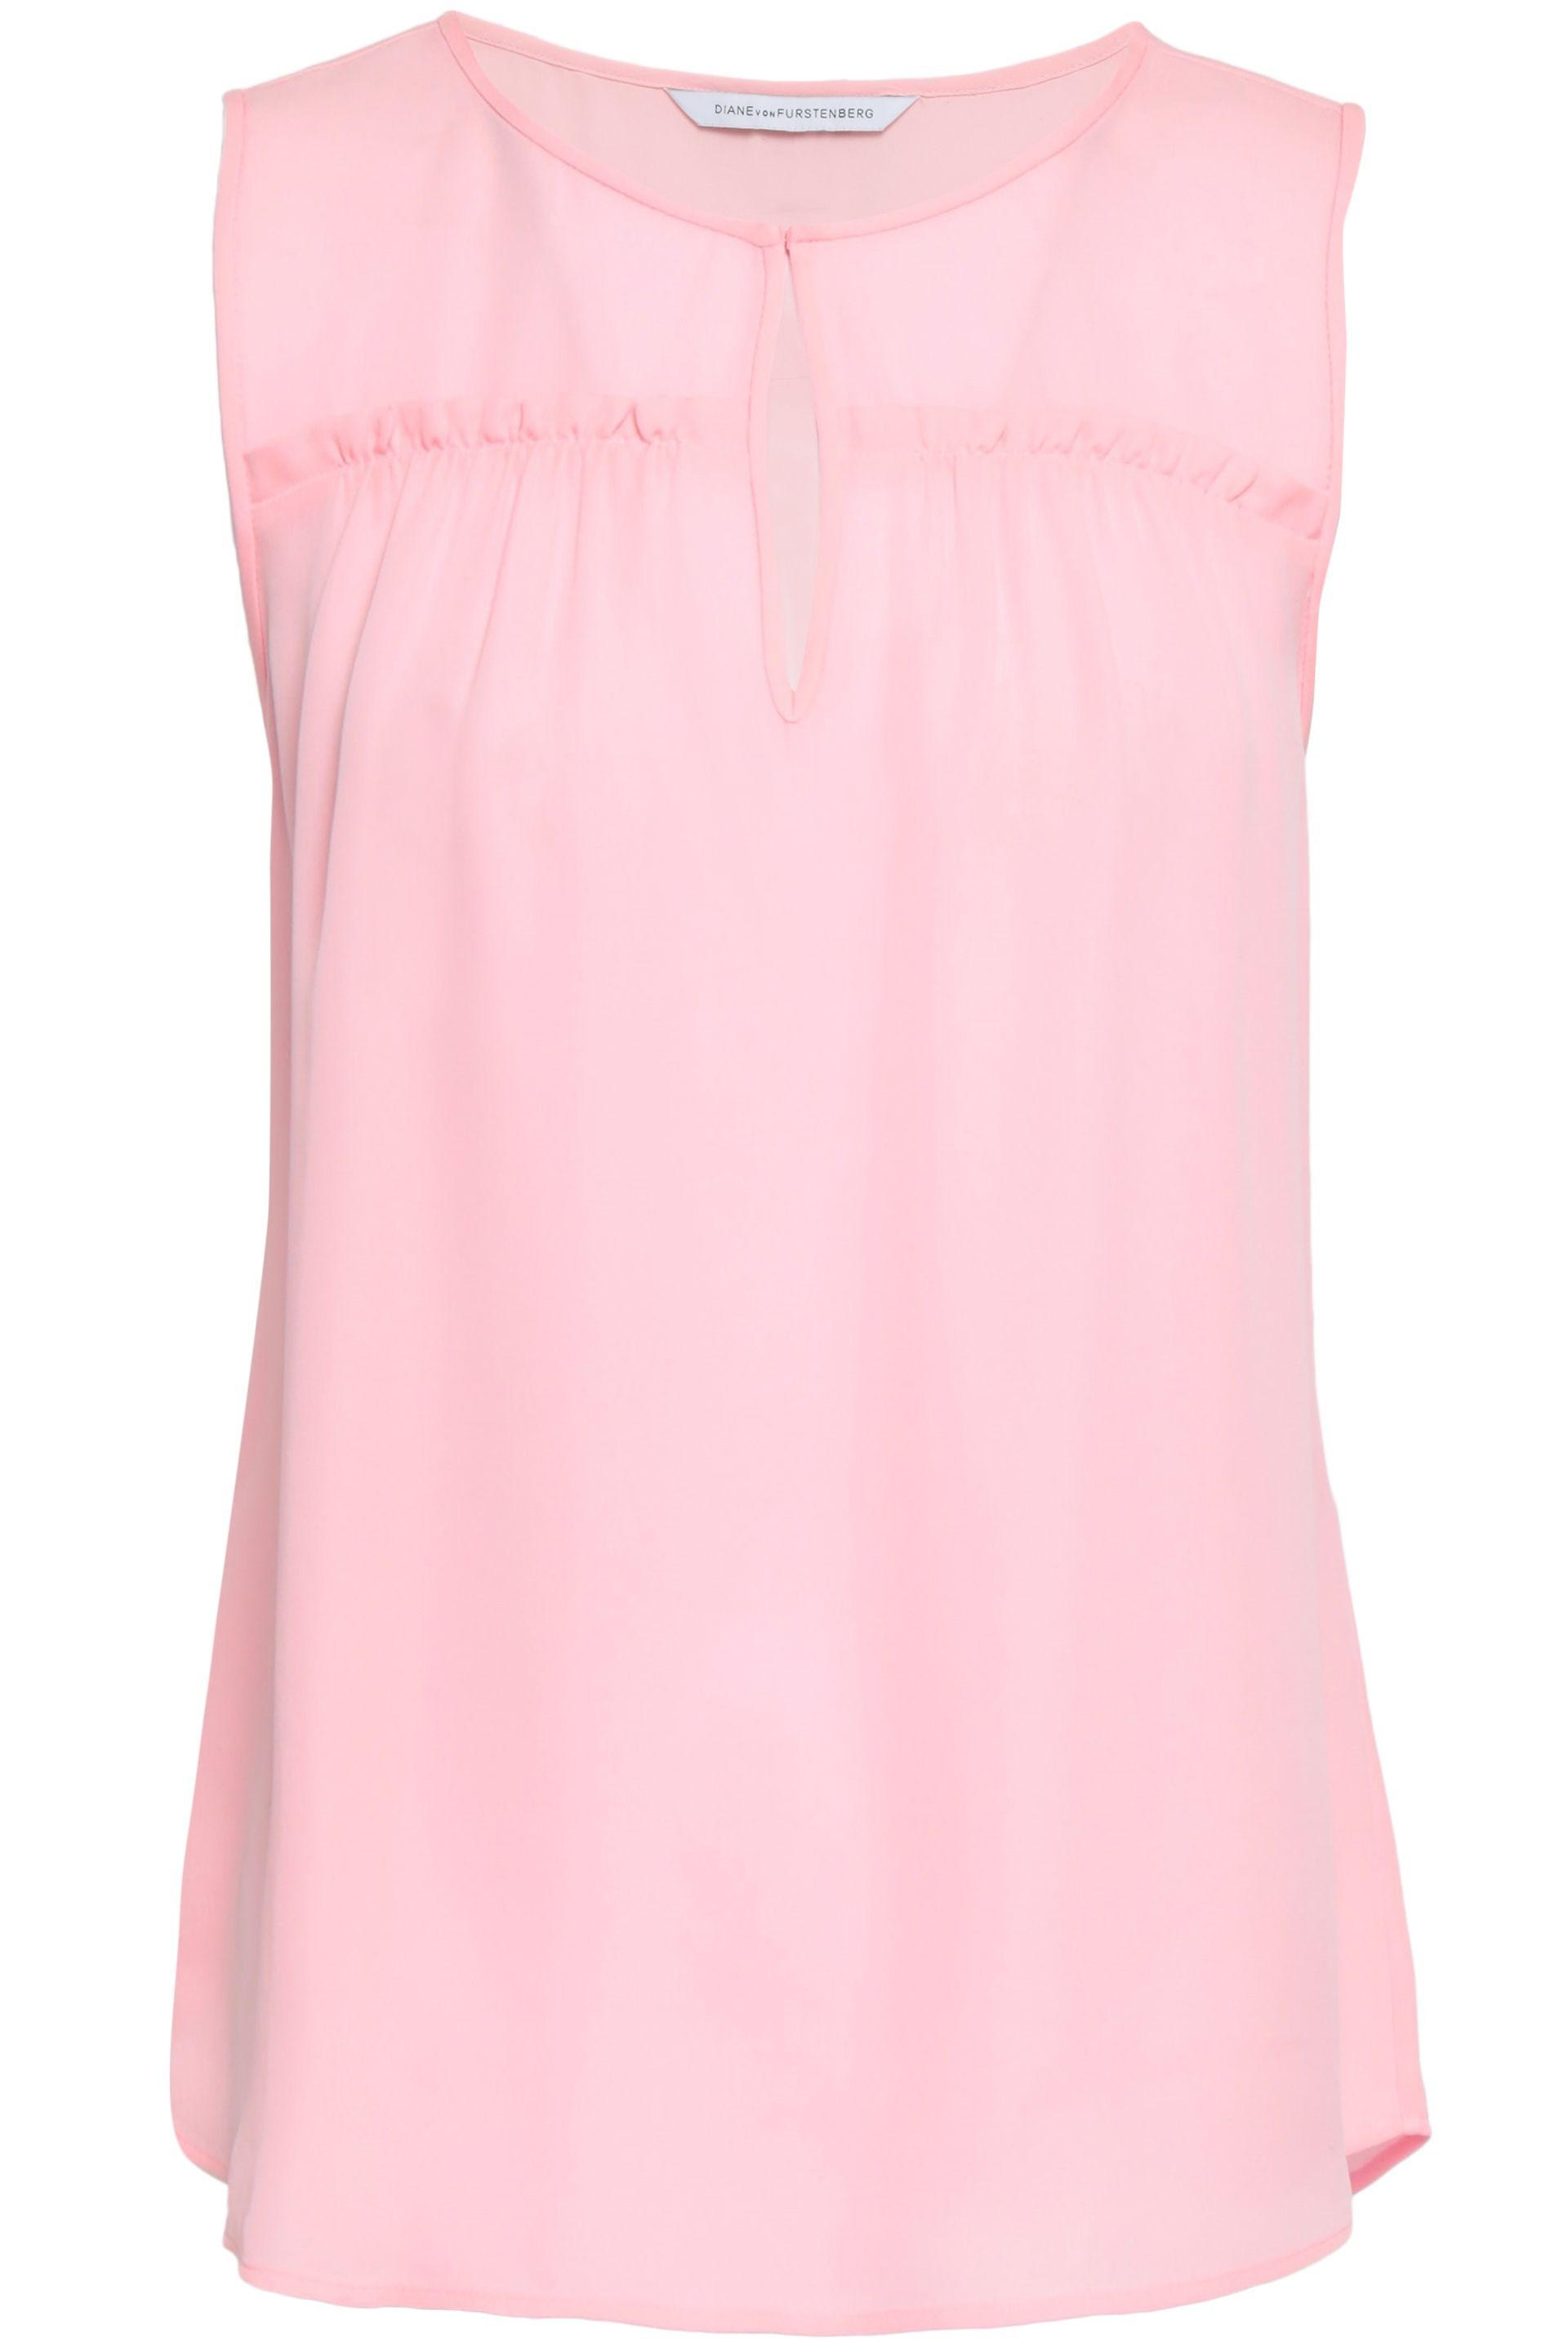 0e7385175 Diane von Furstenberg Woman Ruffle-trimmed Crepe Top Baby Pink in ...